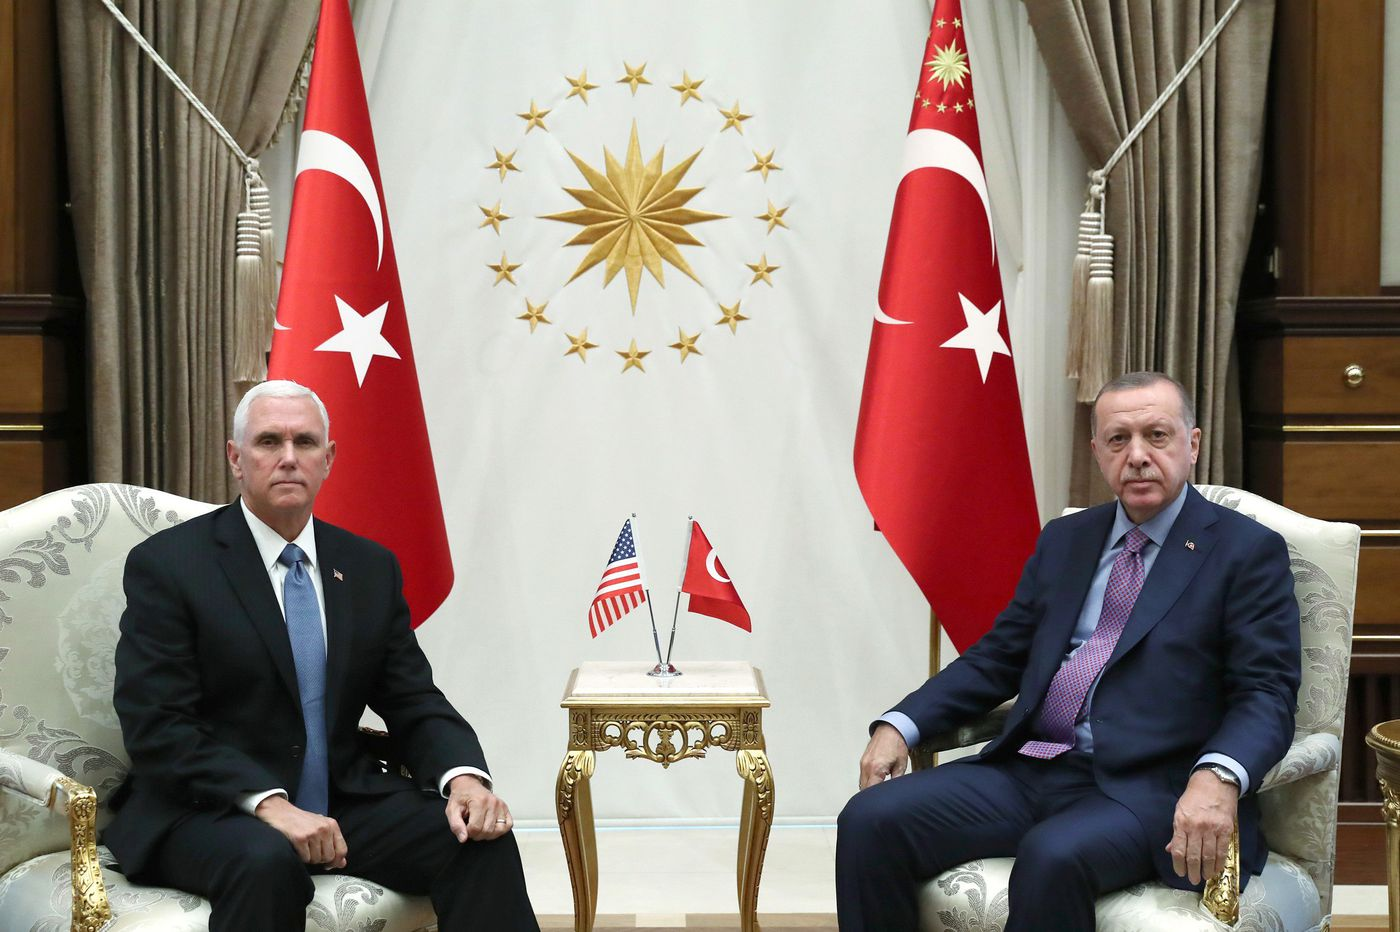 U.S., Turkey agree to 5-day cease-fire in Syria, Pence says, to let Kurds withdraw